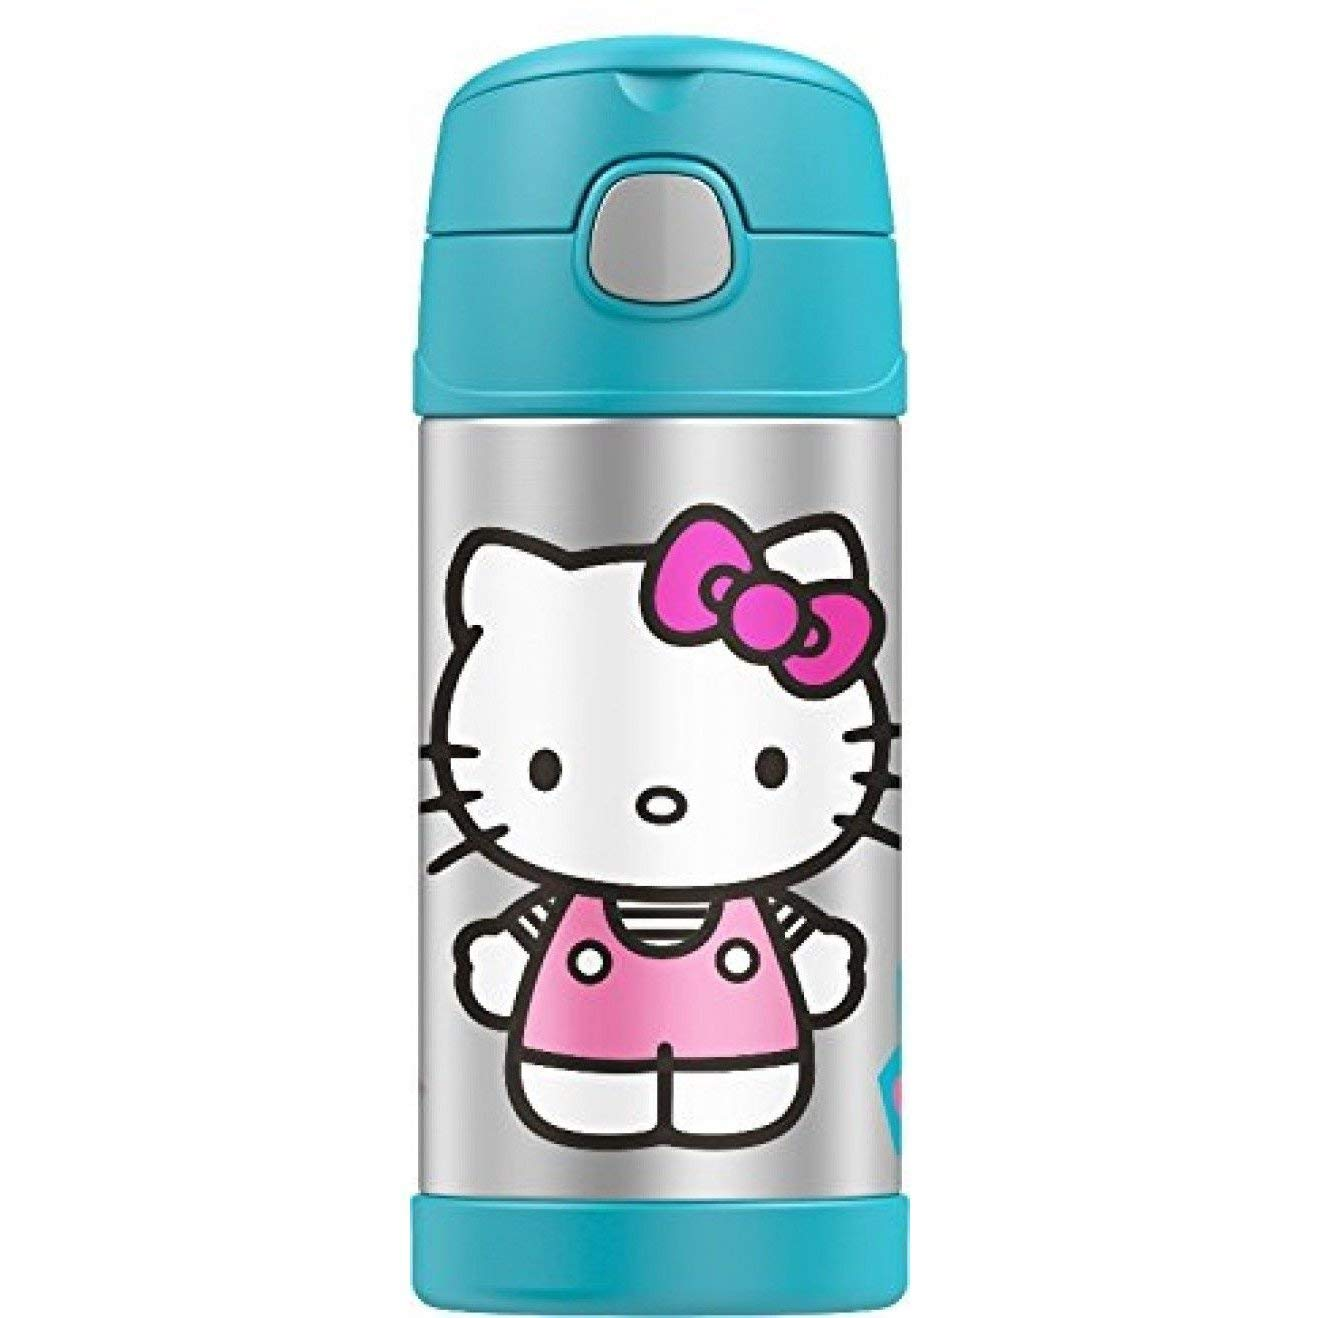 Thermos Funtainer 12 Ounce Bottle Hello Kitty Assorted Bott Funko Pop Doraemon Colors Kitchen Dining